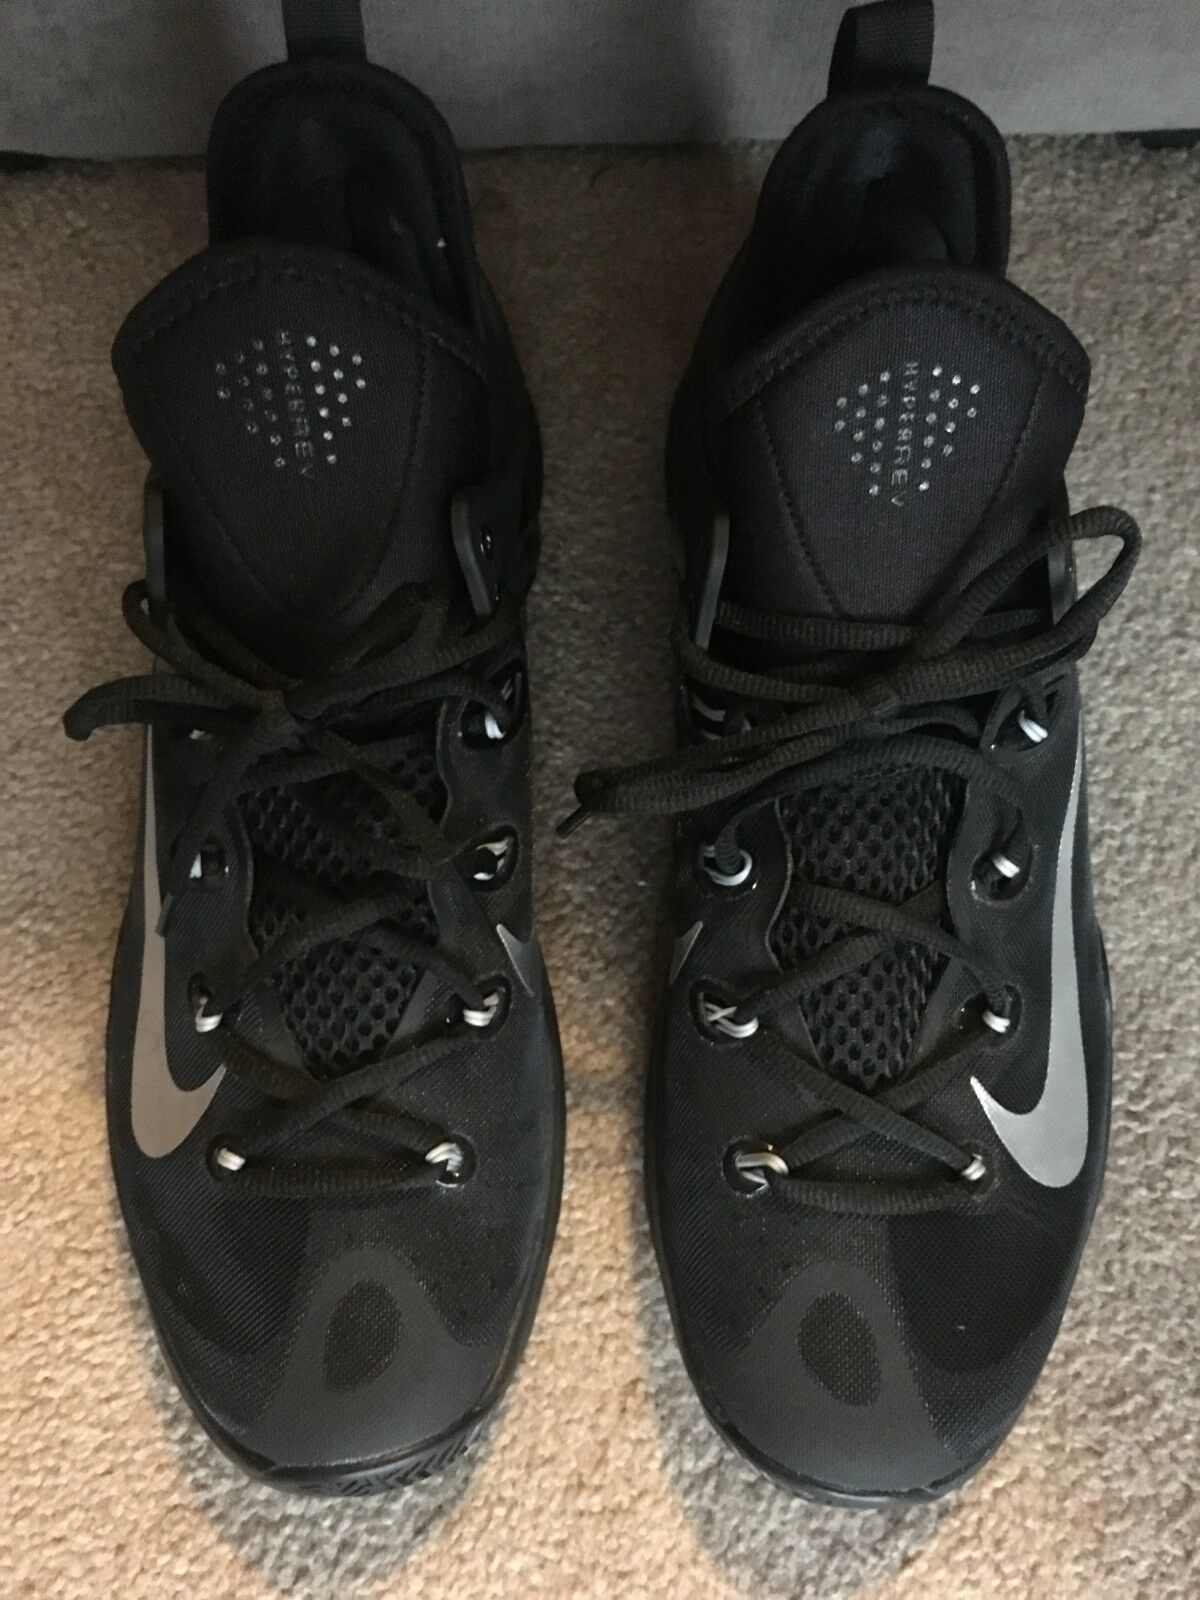 size 12 Nike Zoom Black and gray low tops brand new good condition